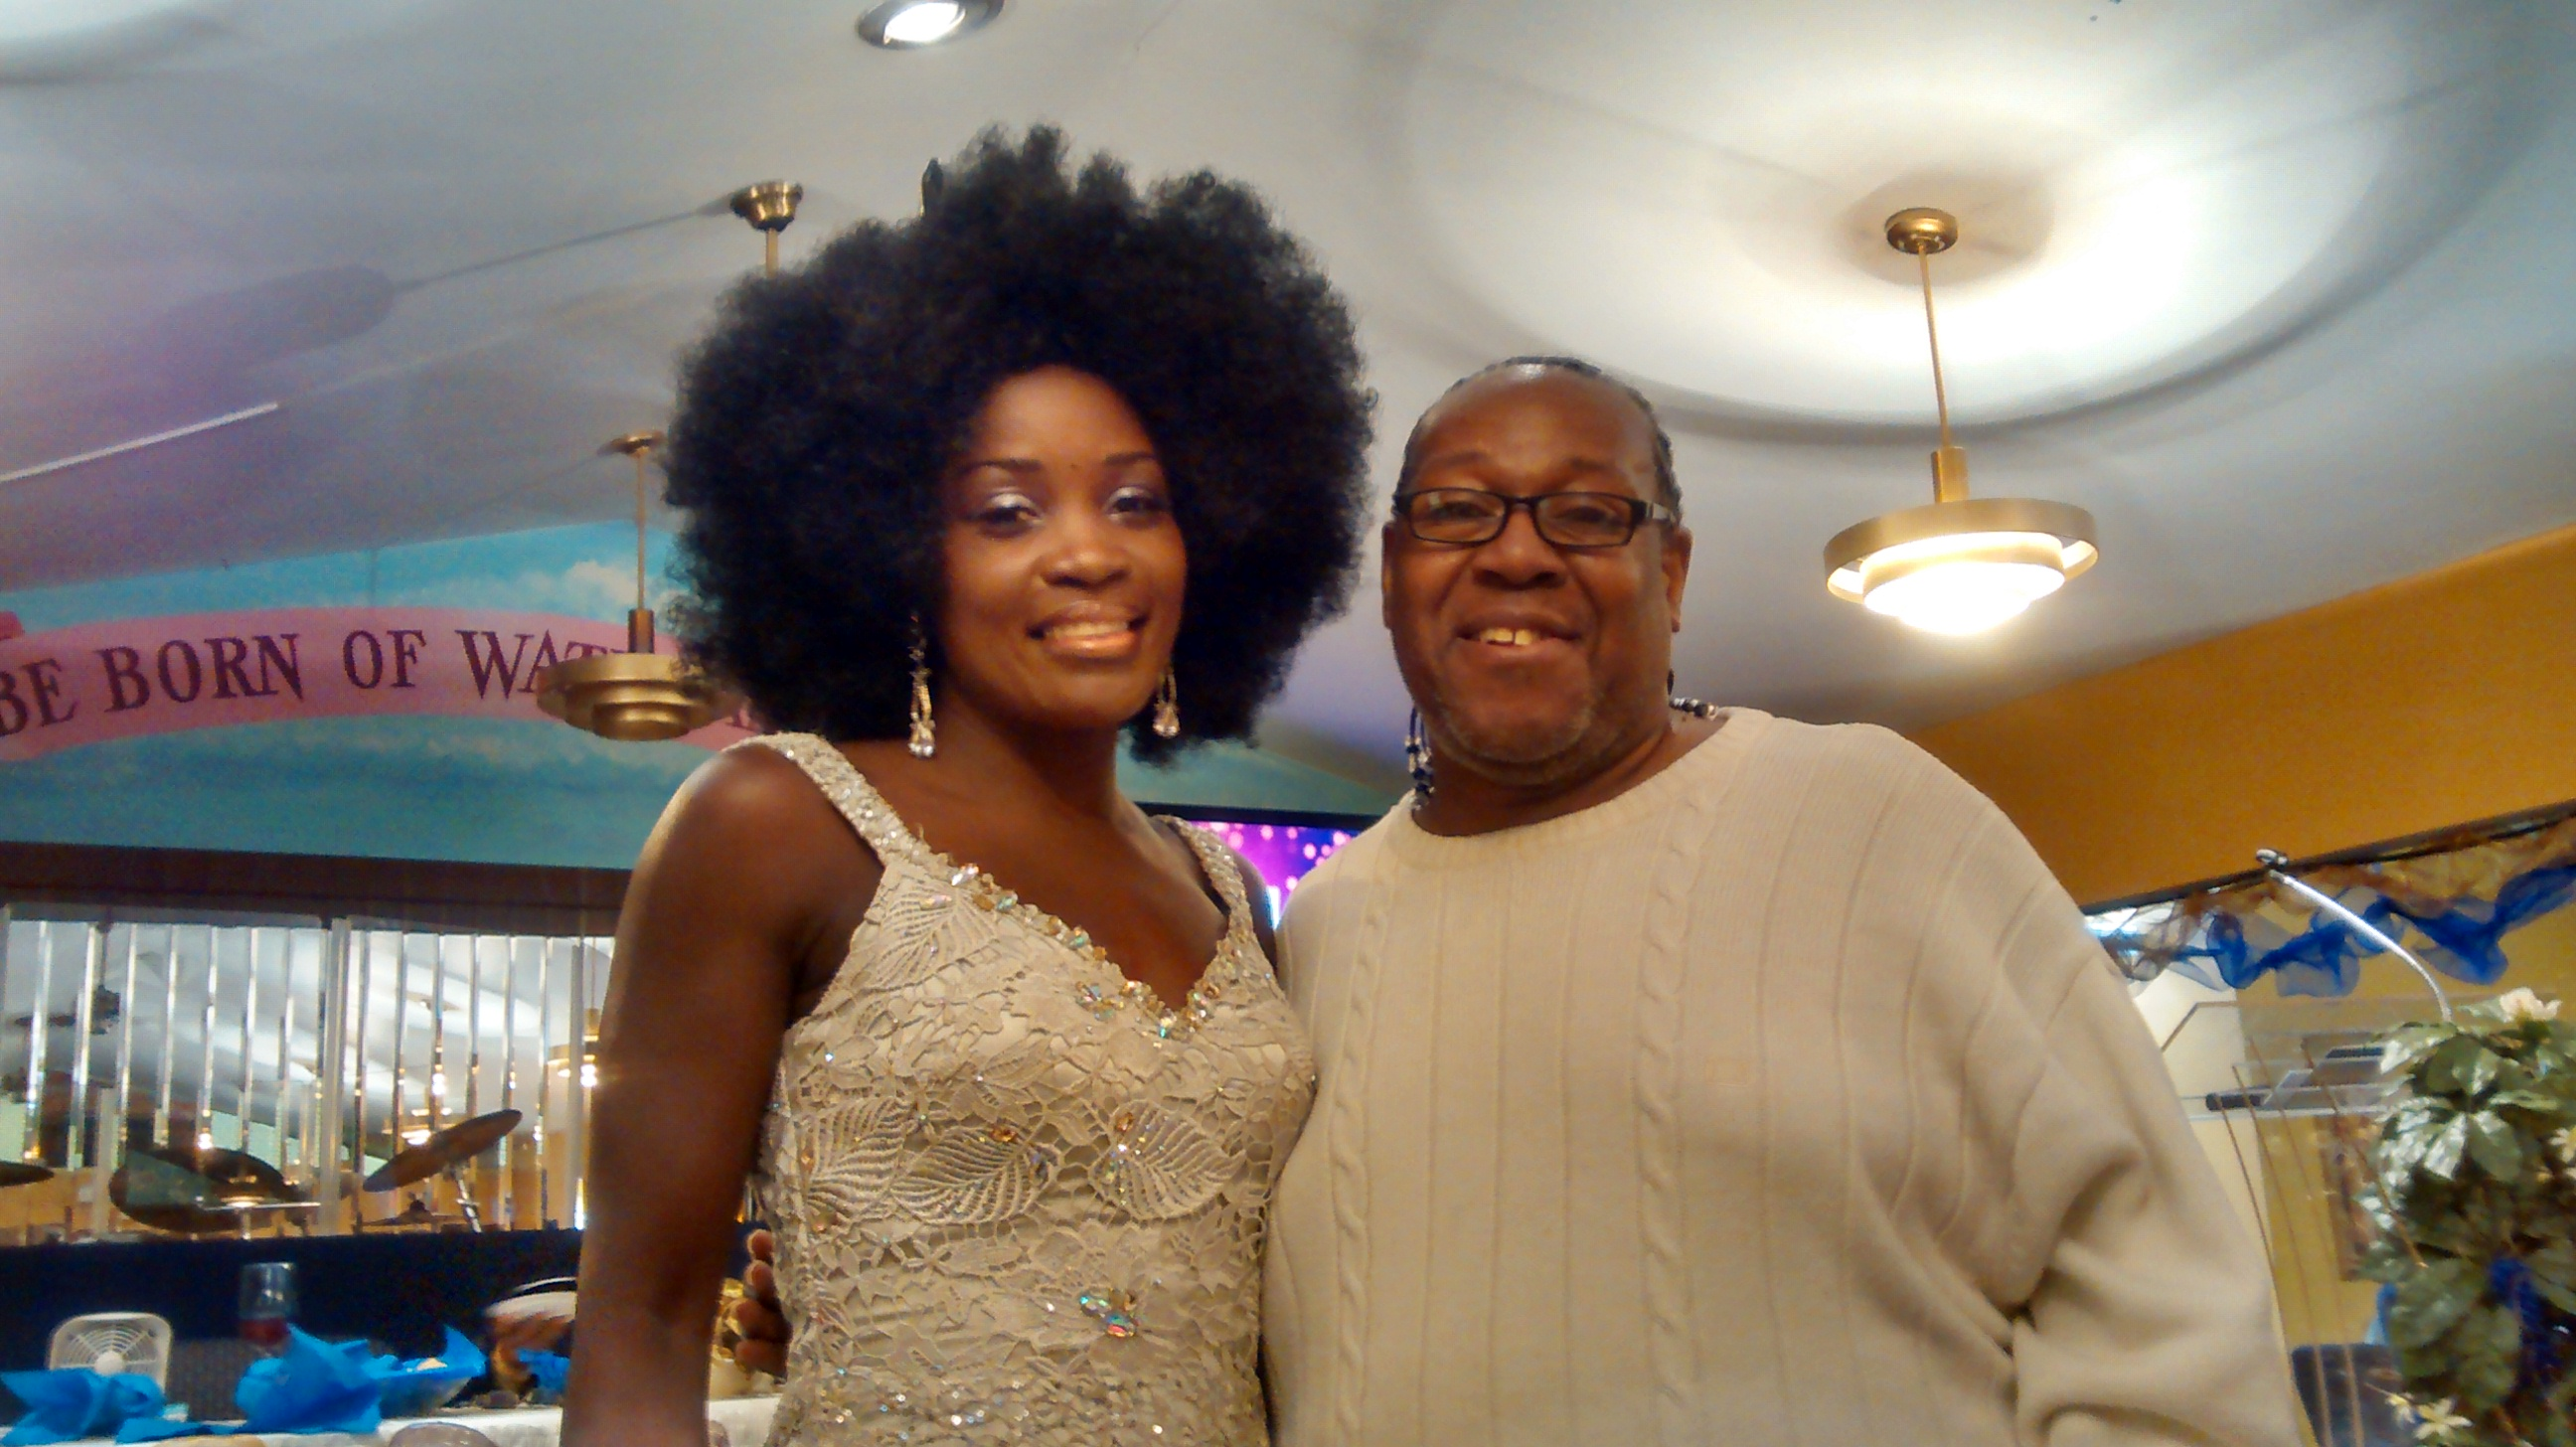 PJ WILLIS WITH LILLIE NICOLE McCLOUD X-FACTOR SINGING SENSATION